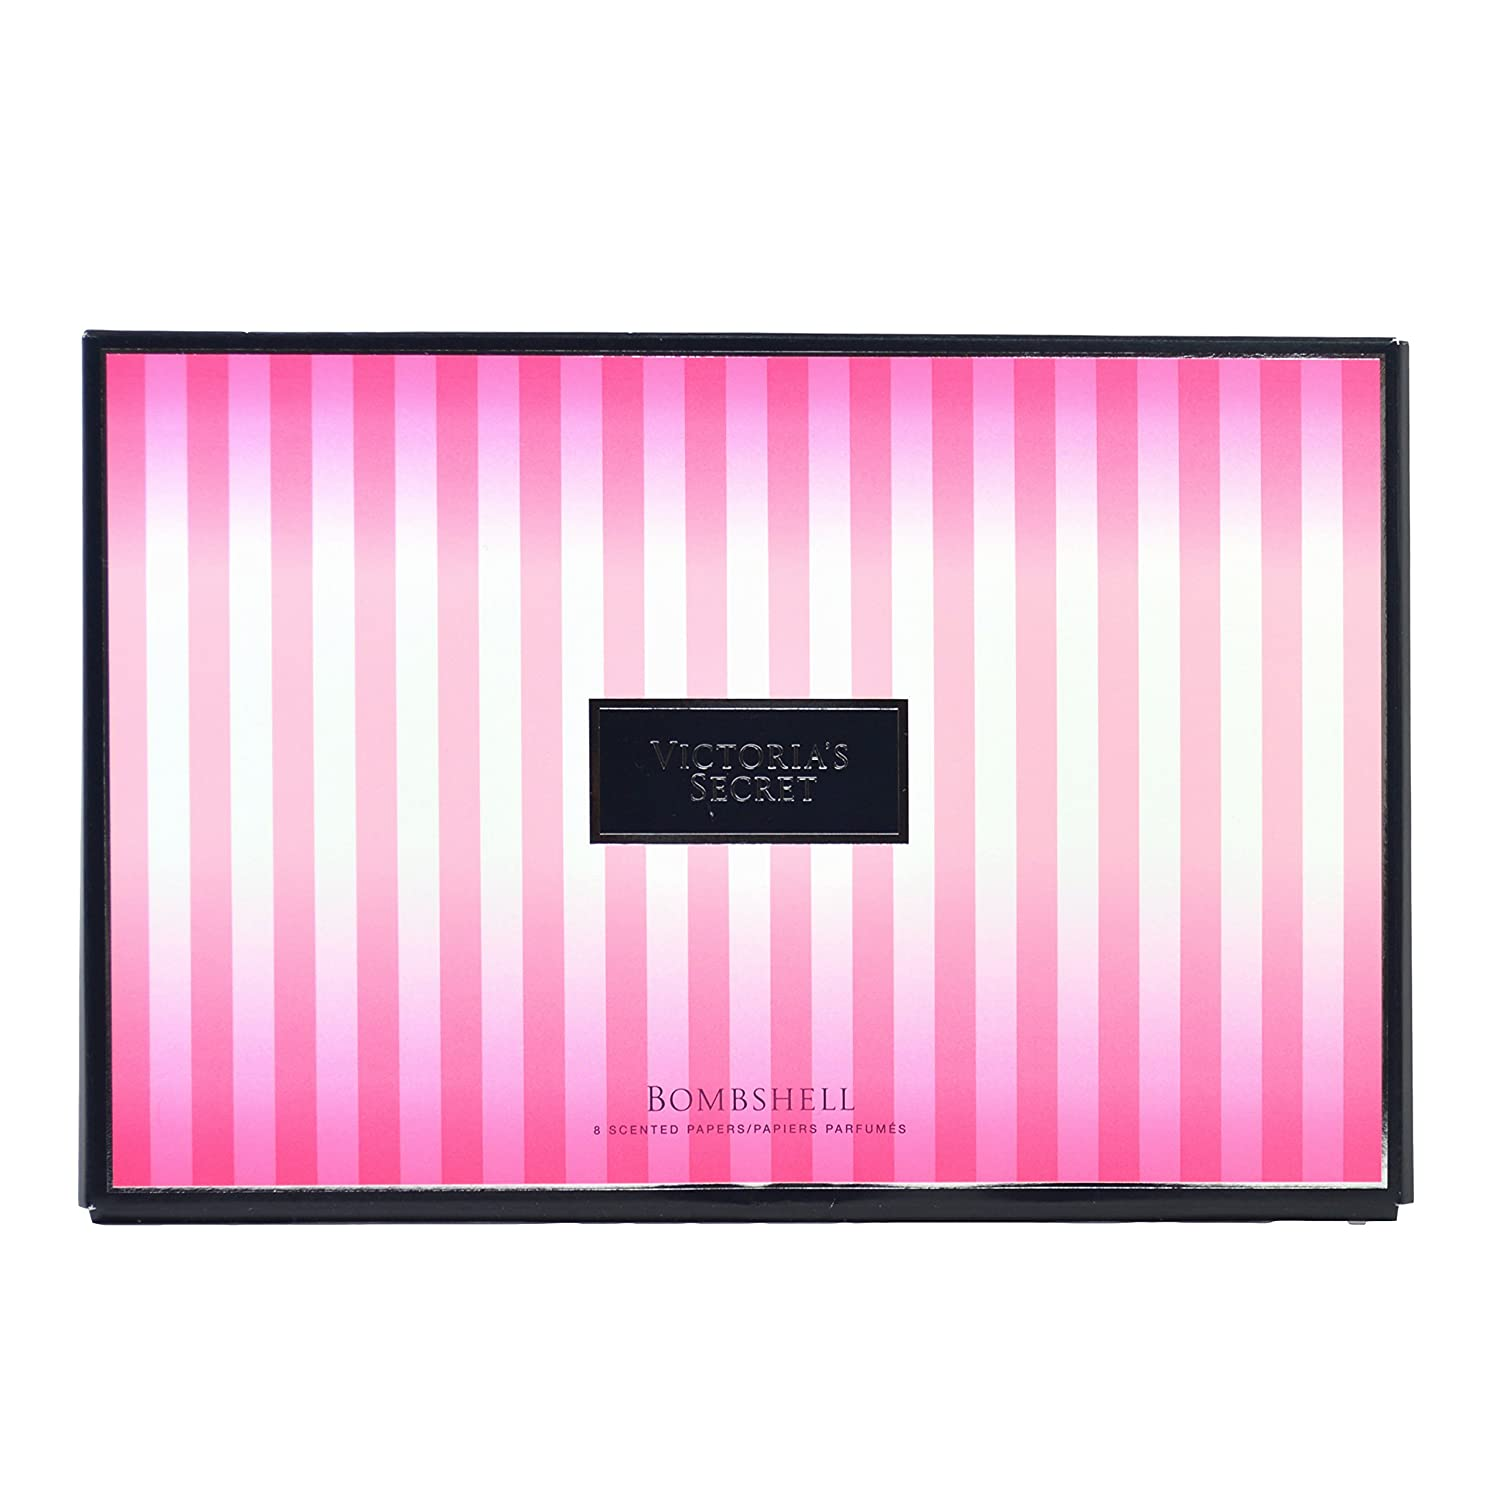 db45976e8d865 Victoria's Secret Scented Papers For Notes or Drawers Great Original Gift  Item (Bombshell)